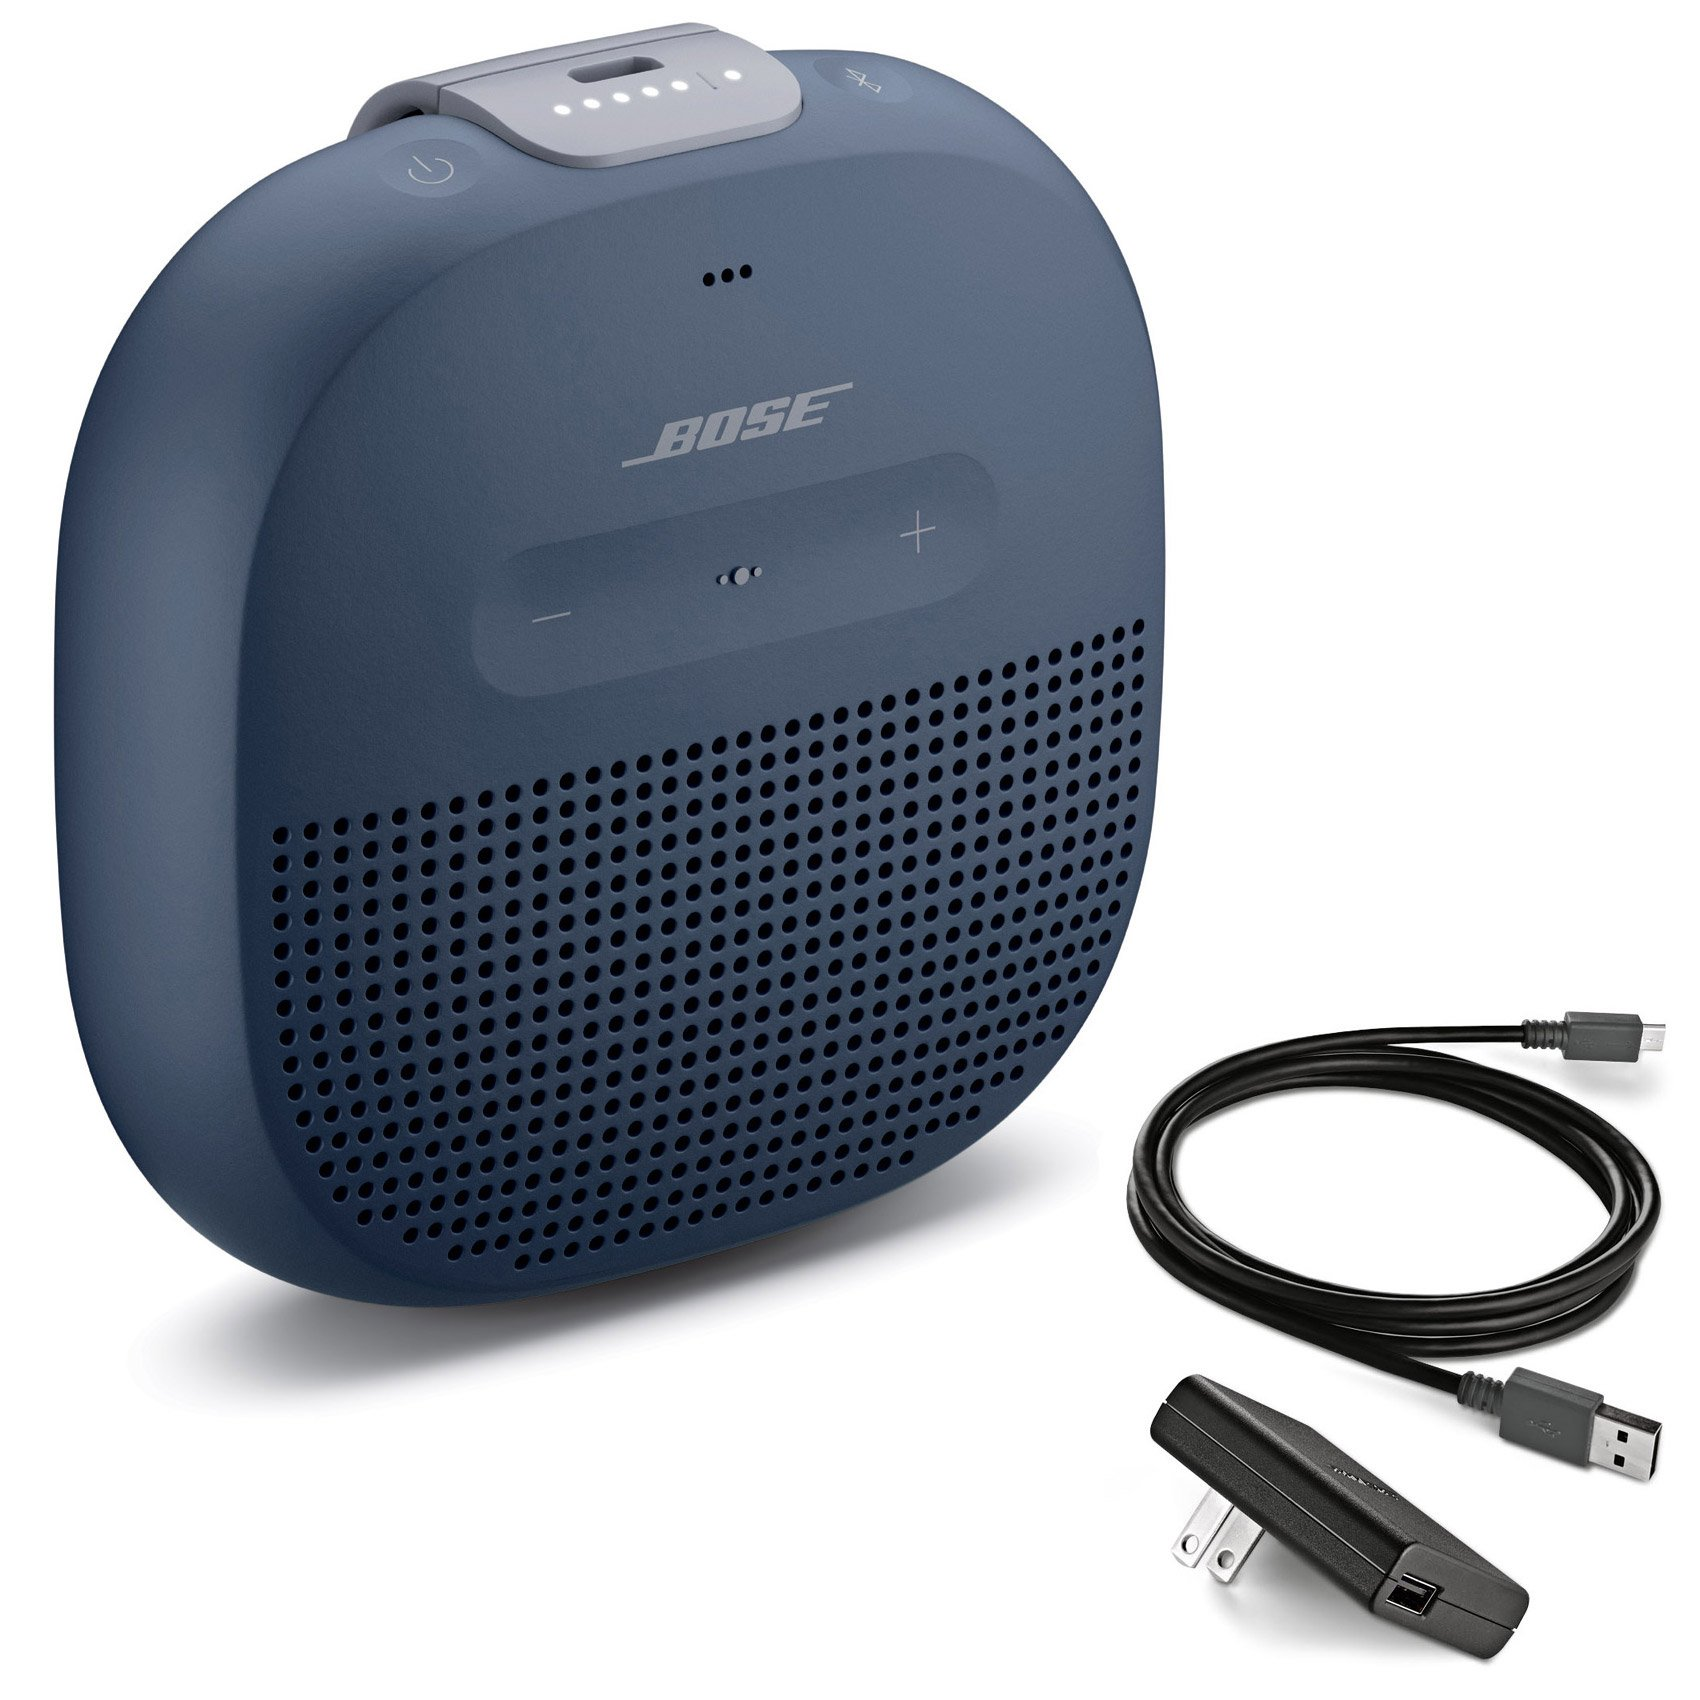 Bose SoundLink Micro Waterproof Bluetooth Speaker, Midnight Blue, with Bose Wall Charger by Bose (Image #1)